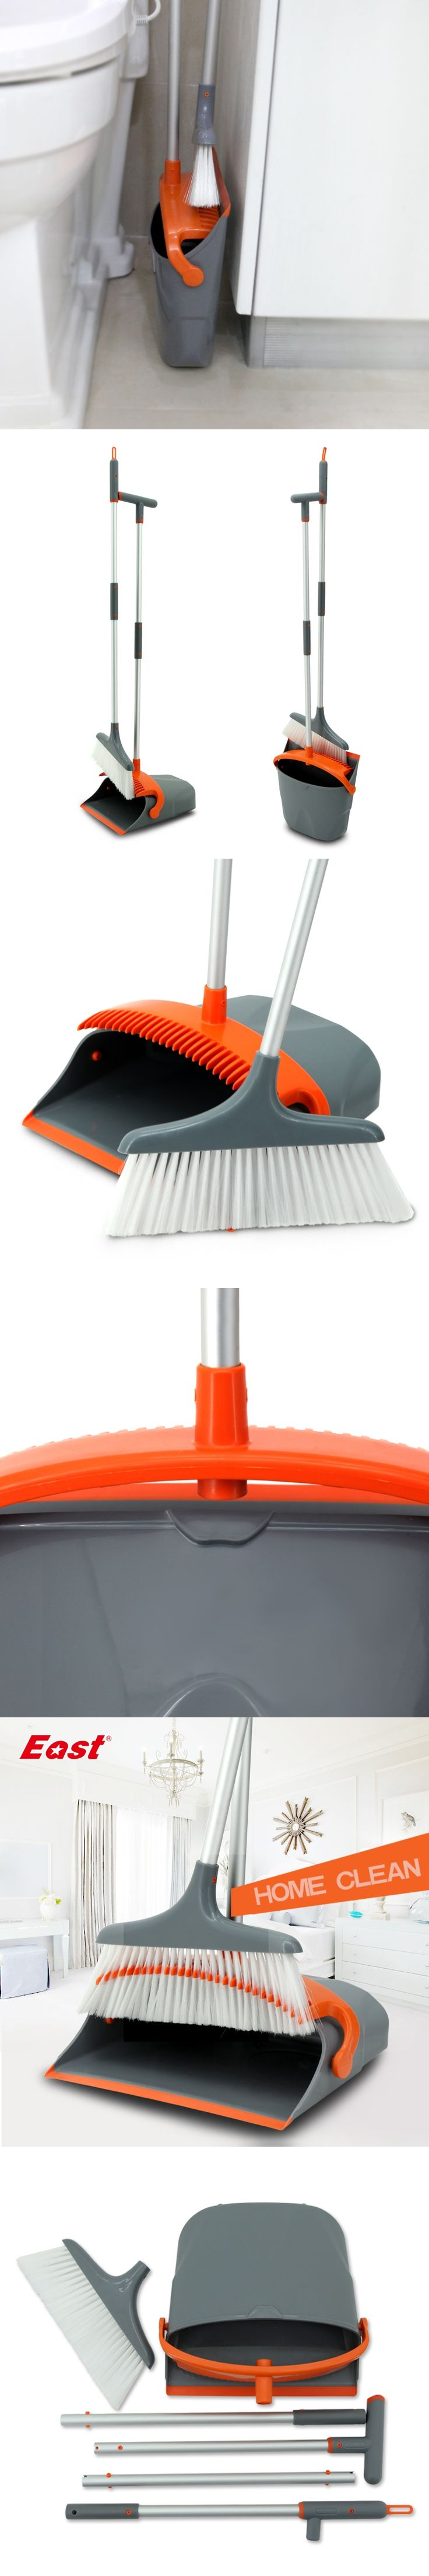 East New Fashion Luxury Broom Dustpan Combination Set Foldable Cleaning Tools House Helper